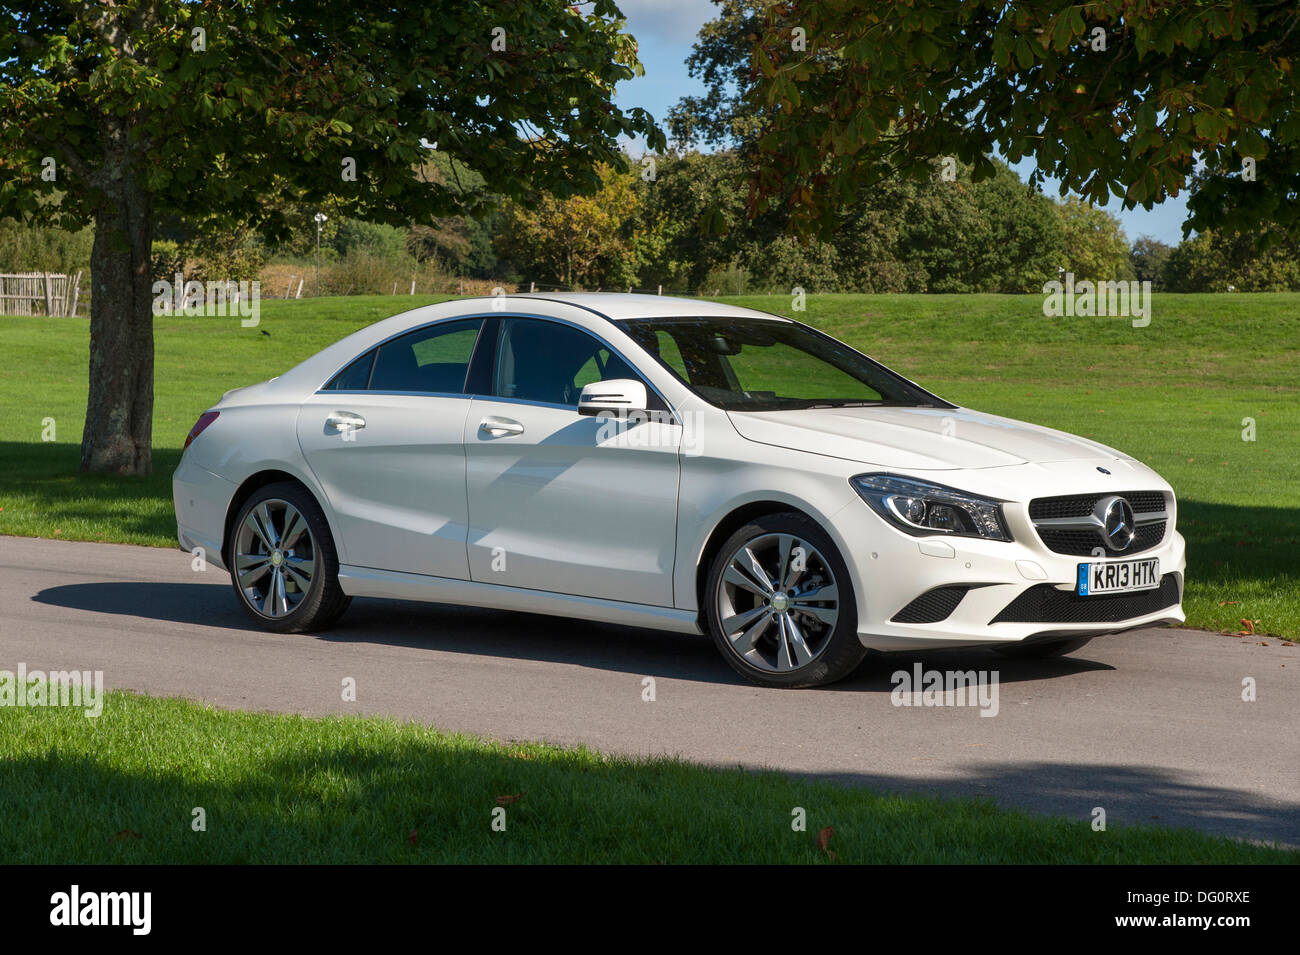 All Types 2013 mercedes cla : 2013 Mercedes Benz CLA 180 Sport Stock Photo: 61484374 - Alamy